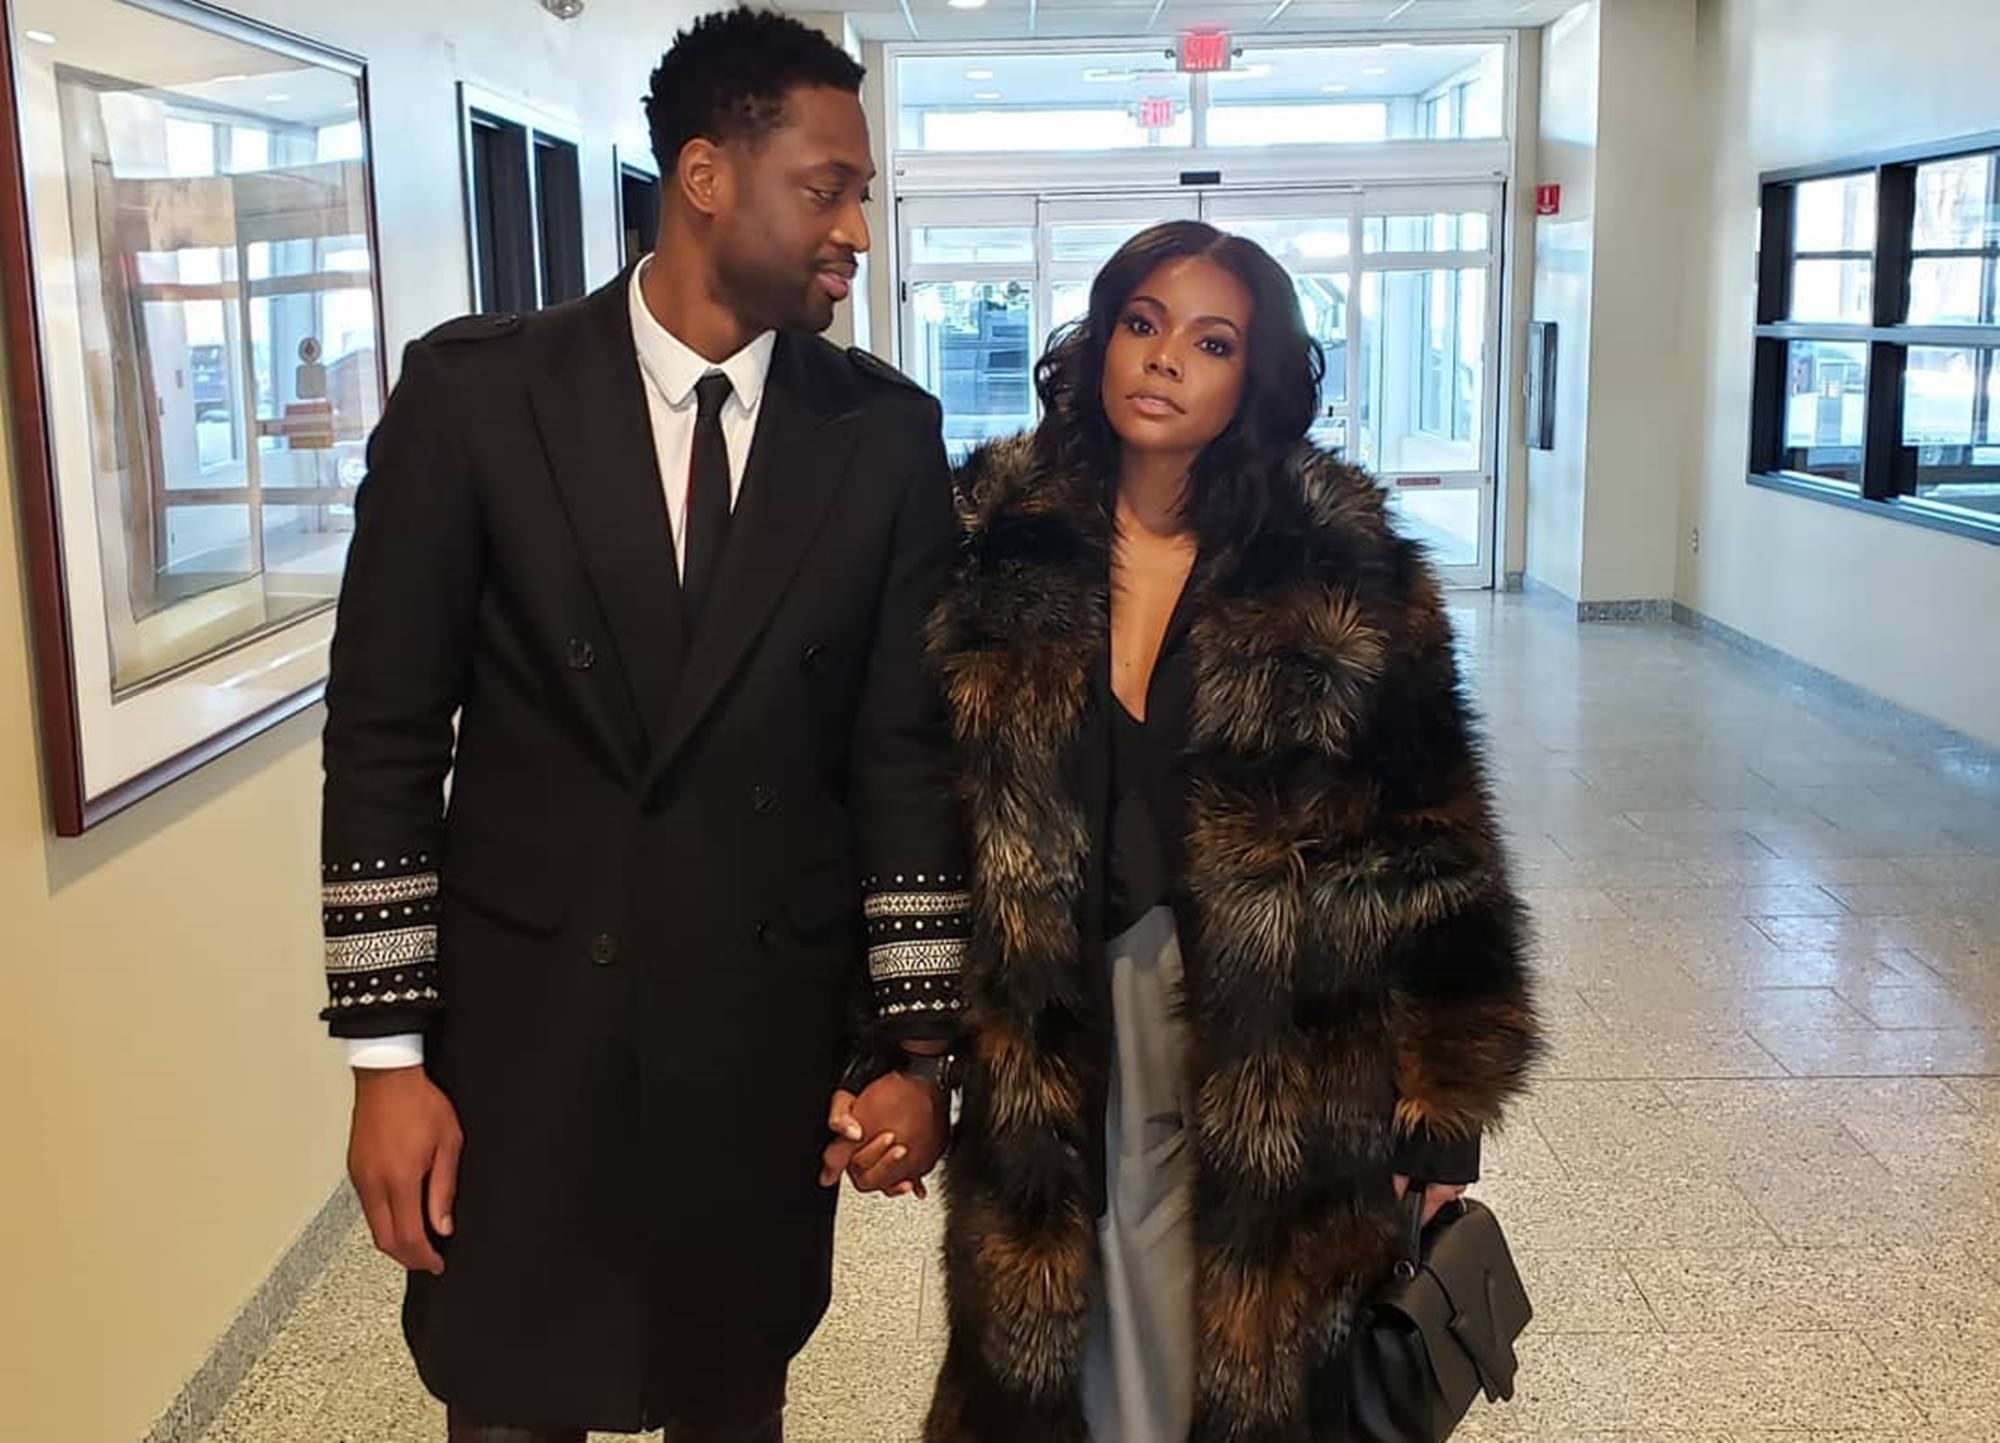 """gabrielle-union-pulls-mama-stunts-in-new-picture-with-dwayne-wade-being-mary-jane-stars-feet-leave-fans-perplexed"""